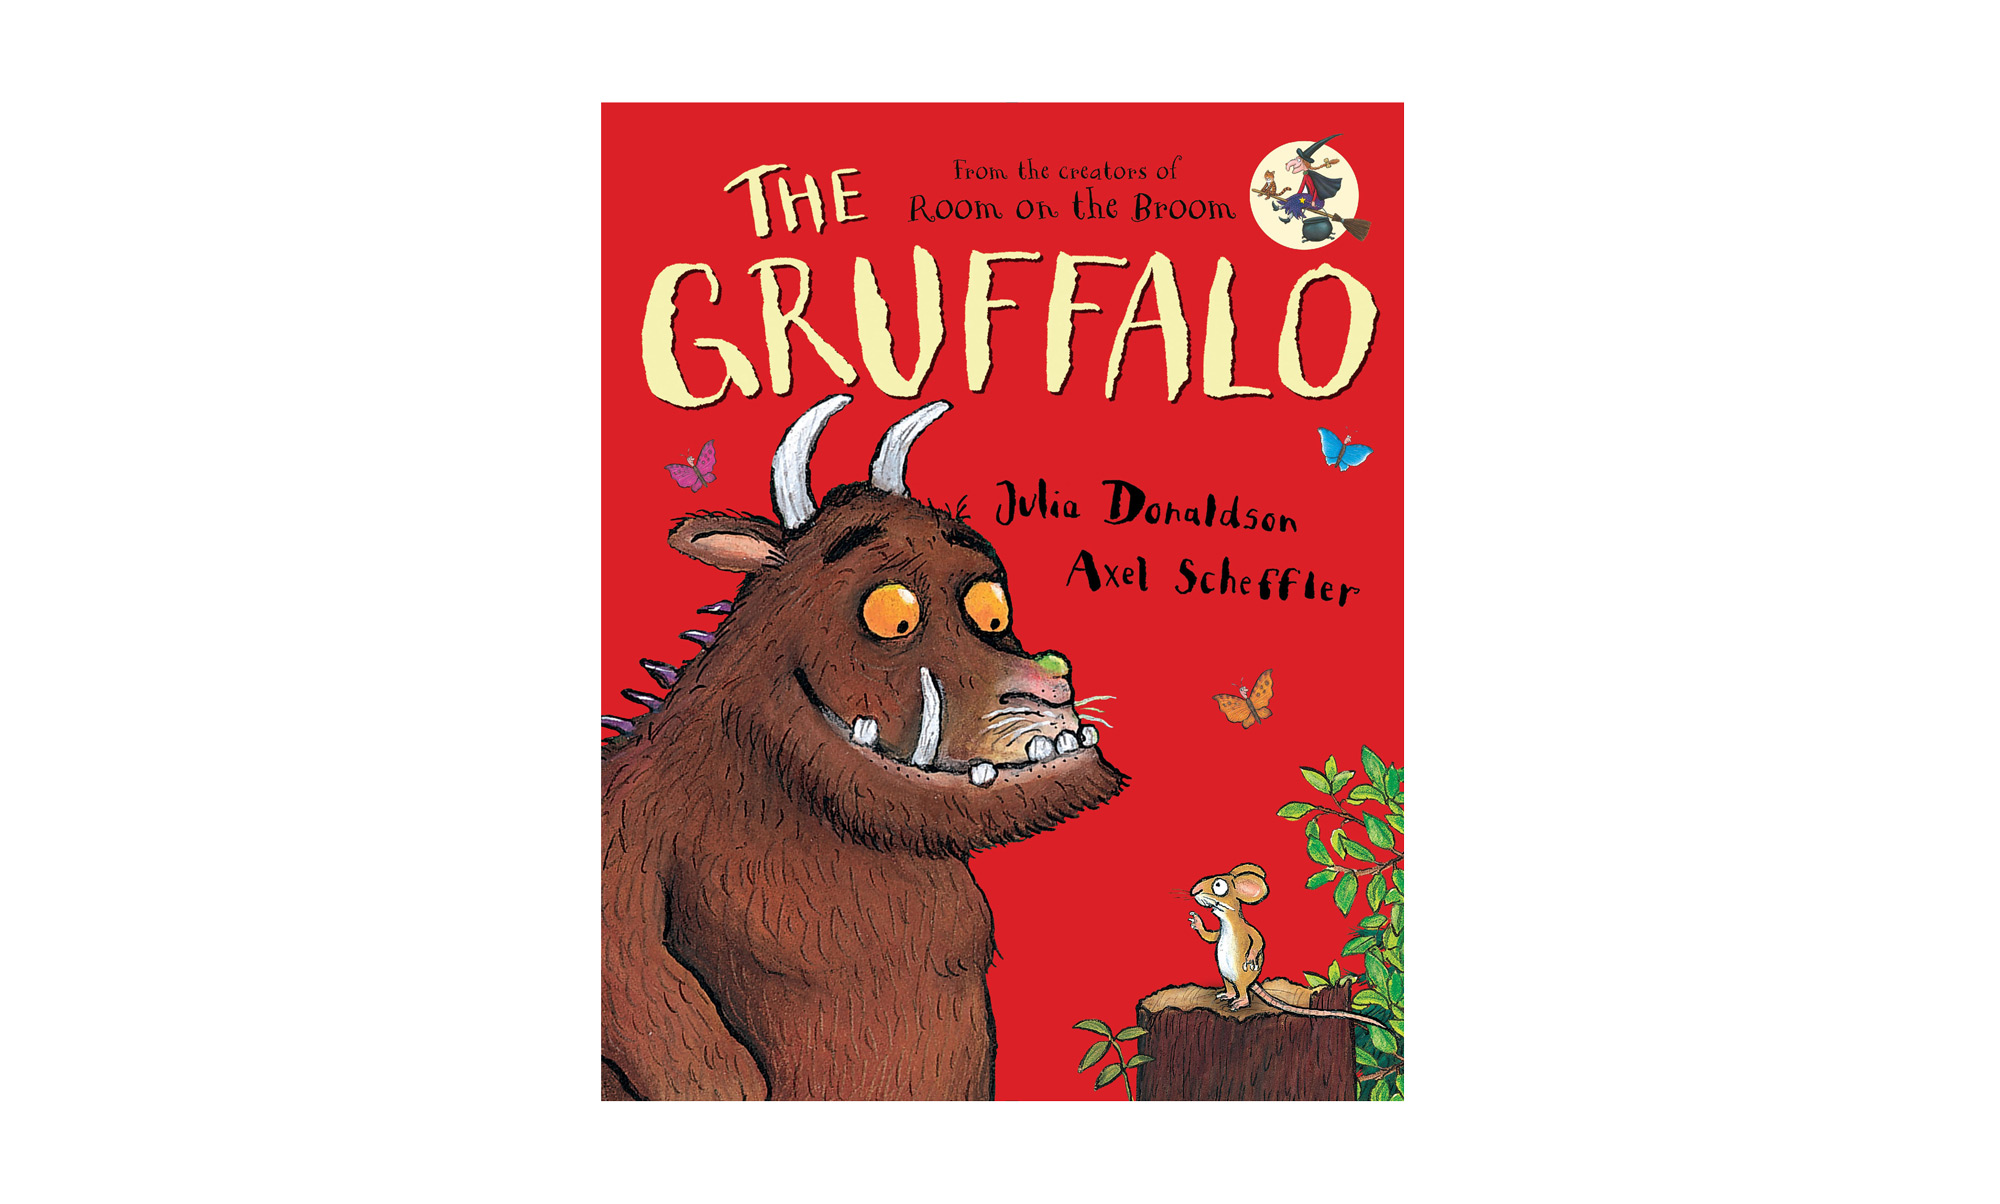 The Gruffalo book cover